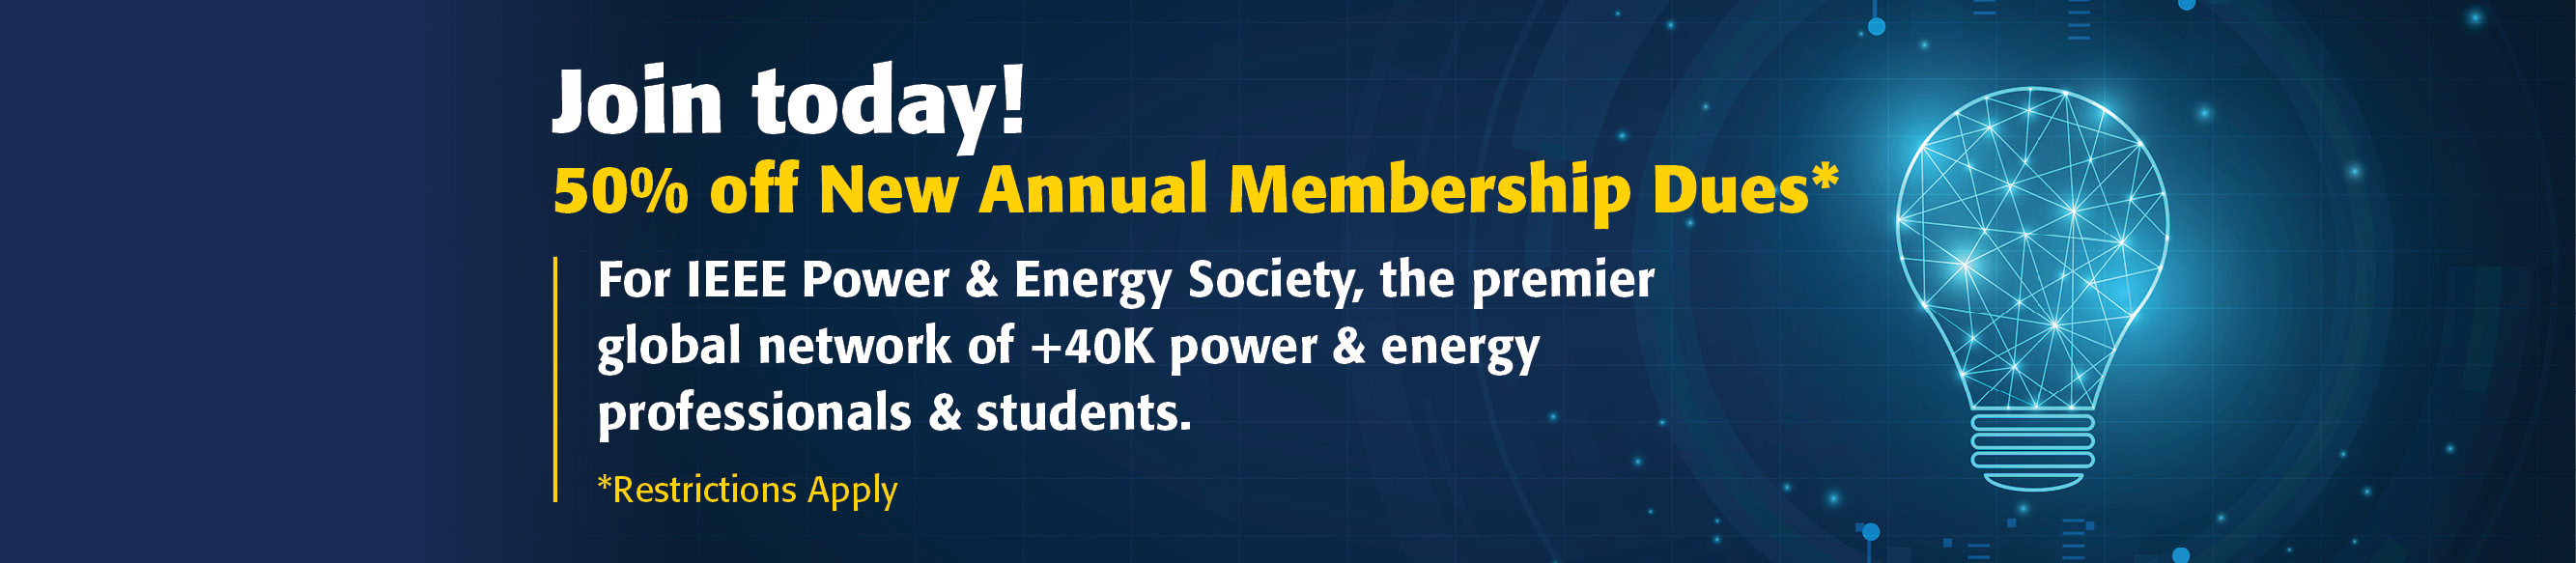 50 percent off of new annual membership dues